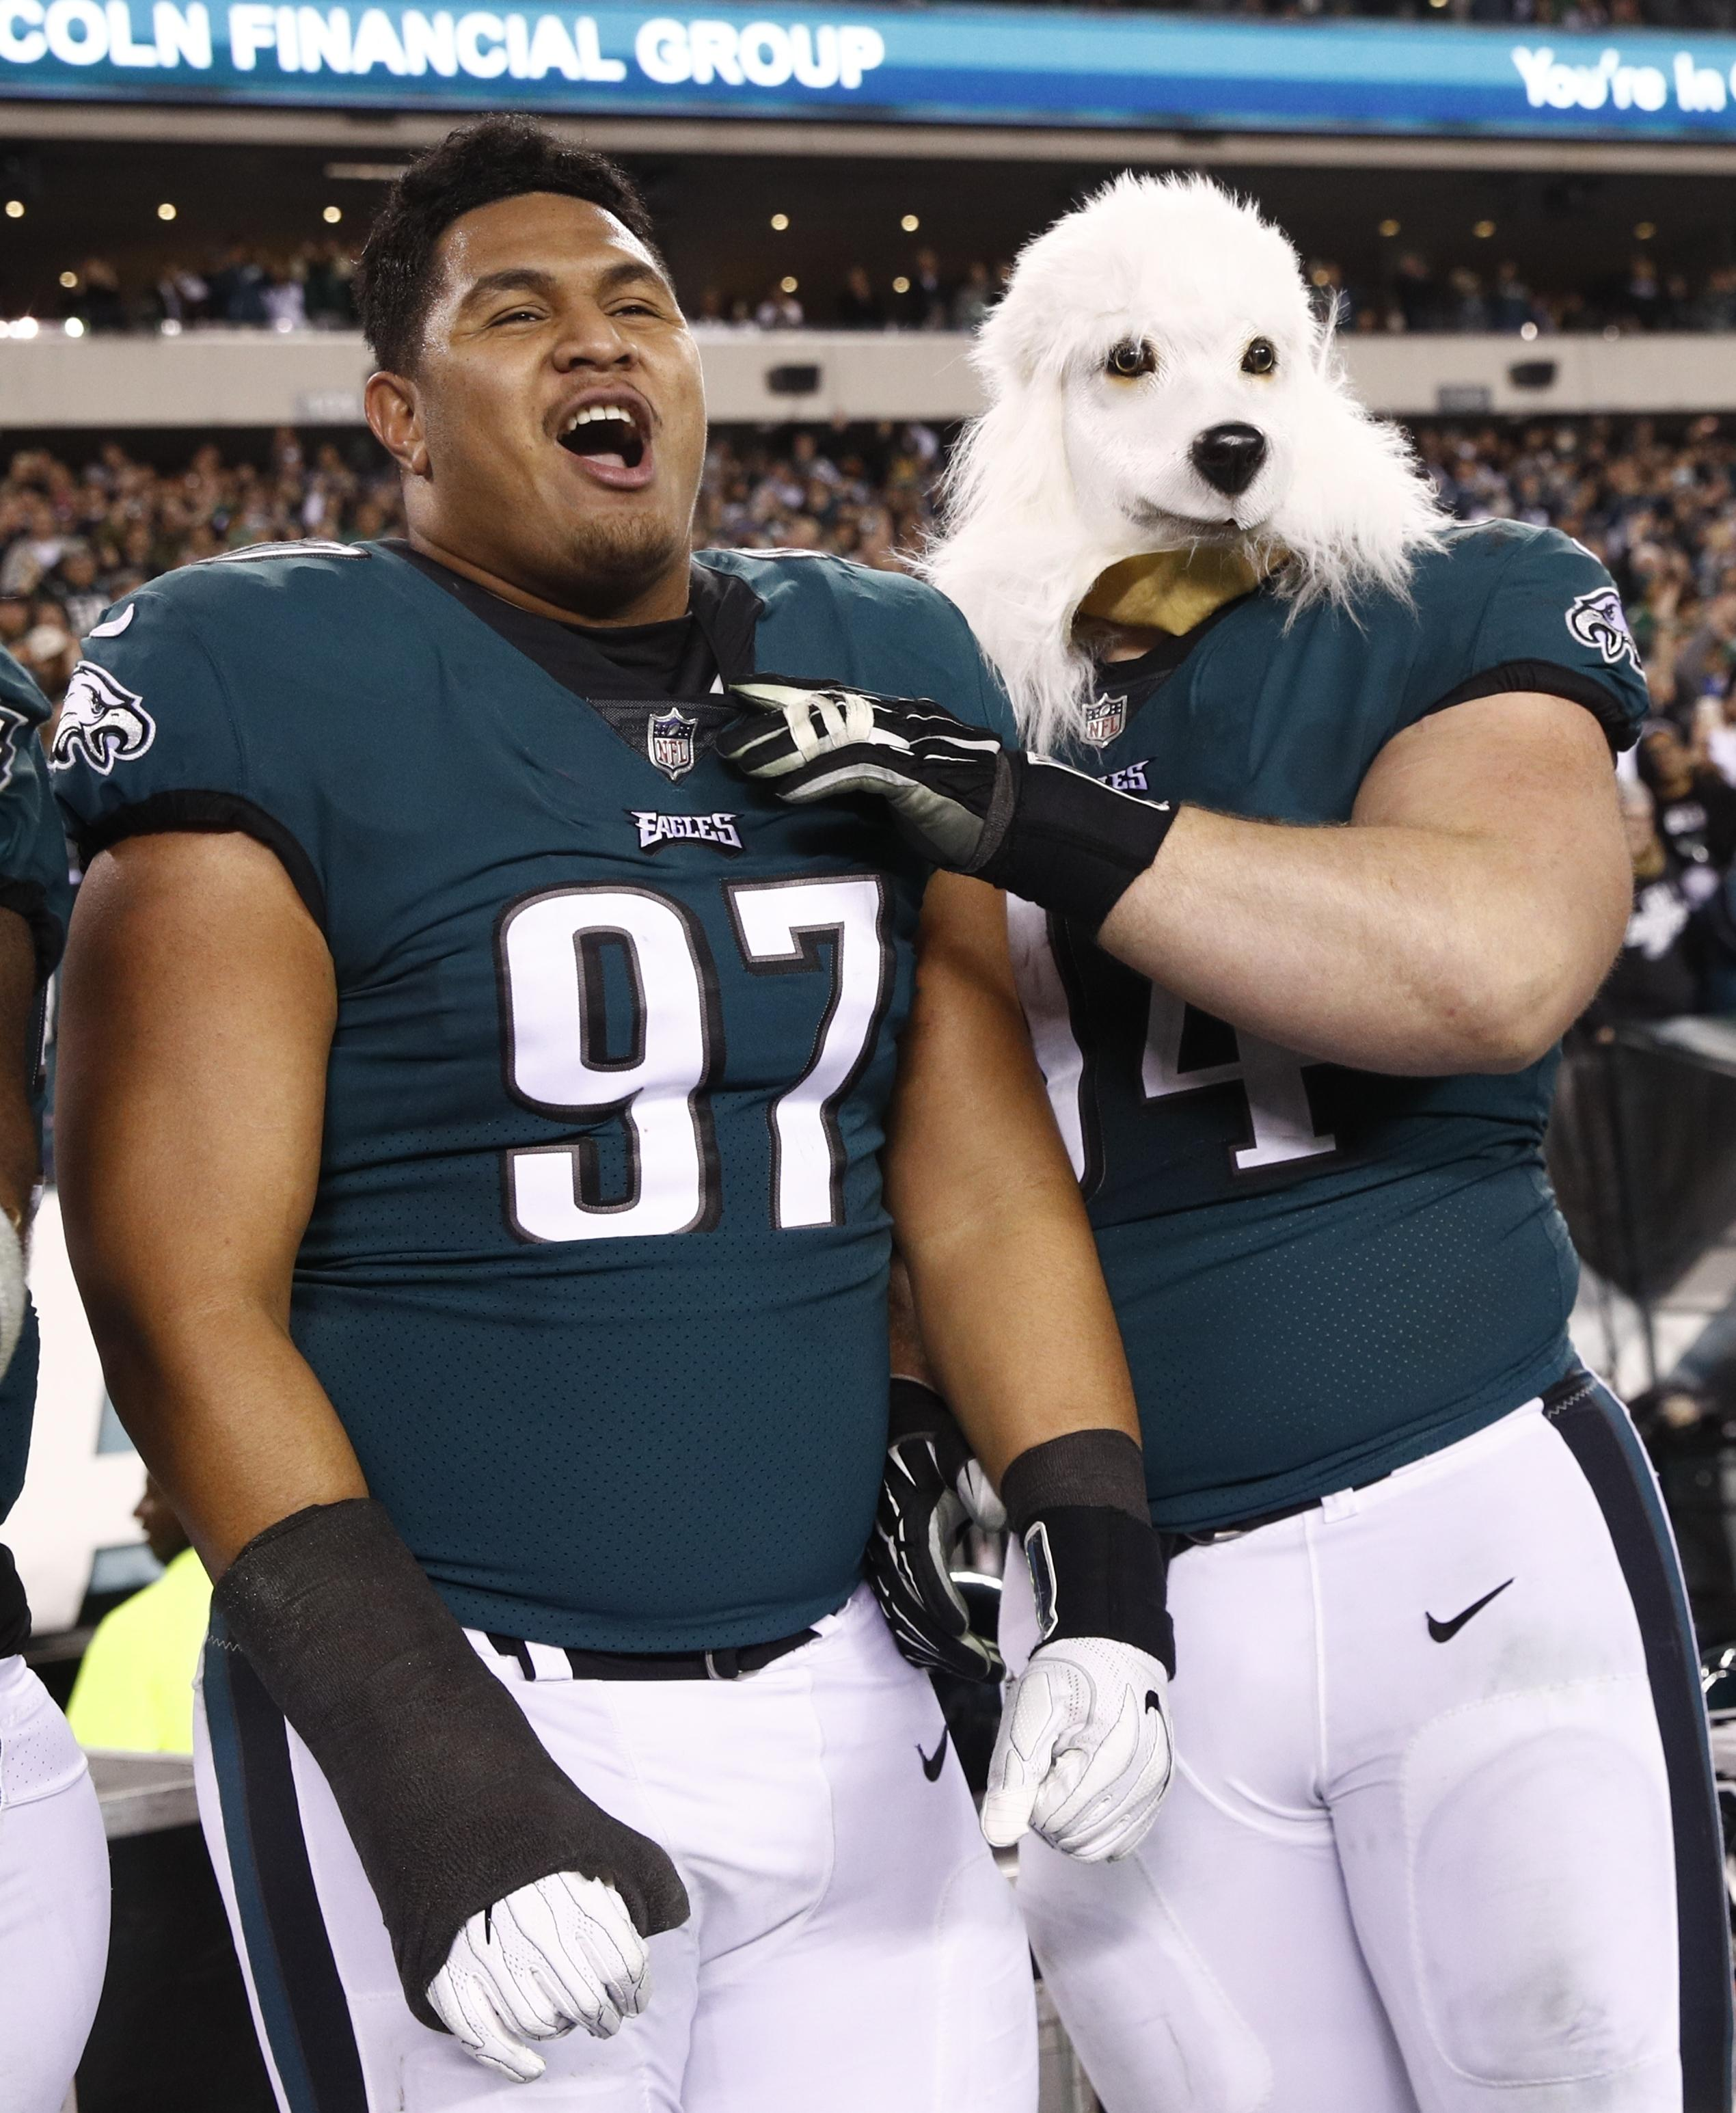 Philadelphia players wore dog masks to mock their underdog status for the second week running